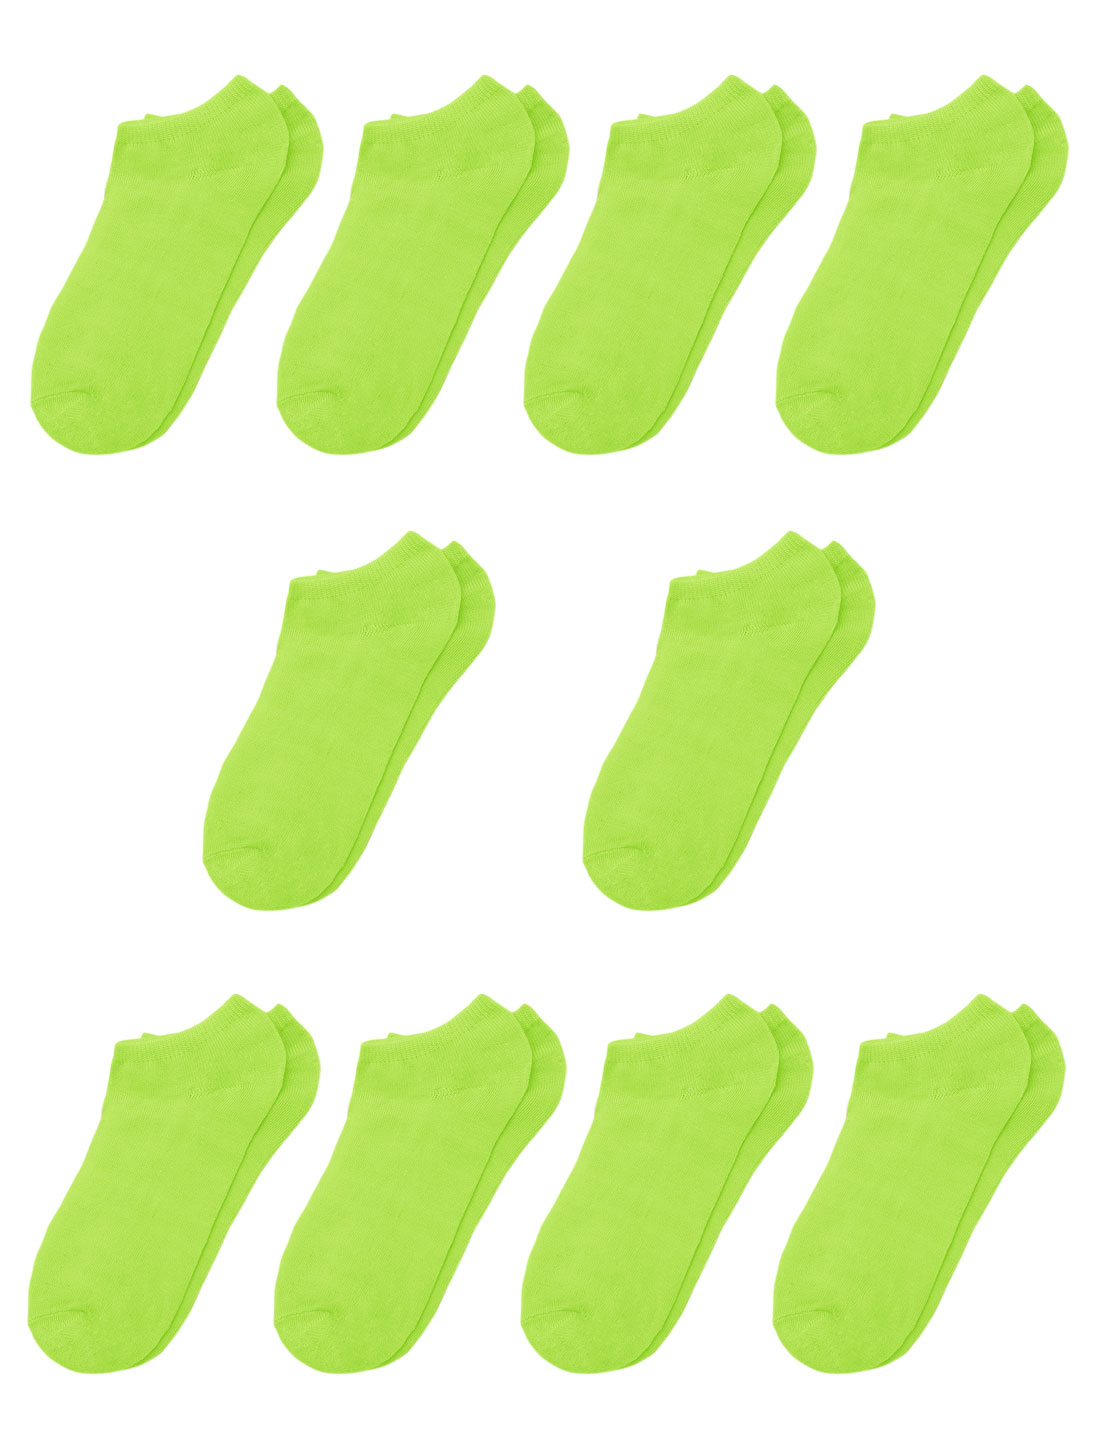 Girls Low Cut Stretch Cuffs Ankle Socks 10 Pairs Green